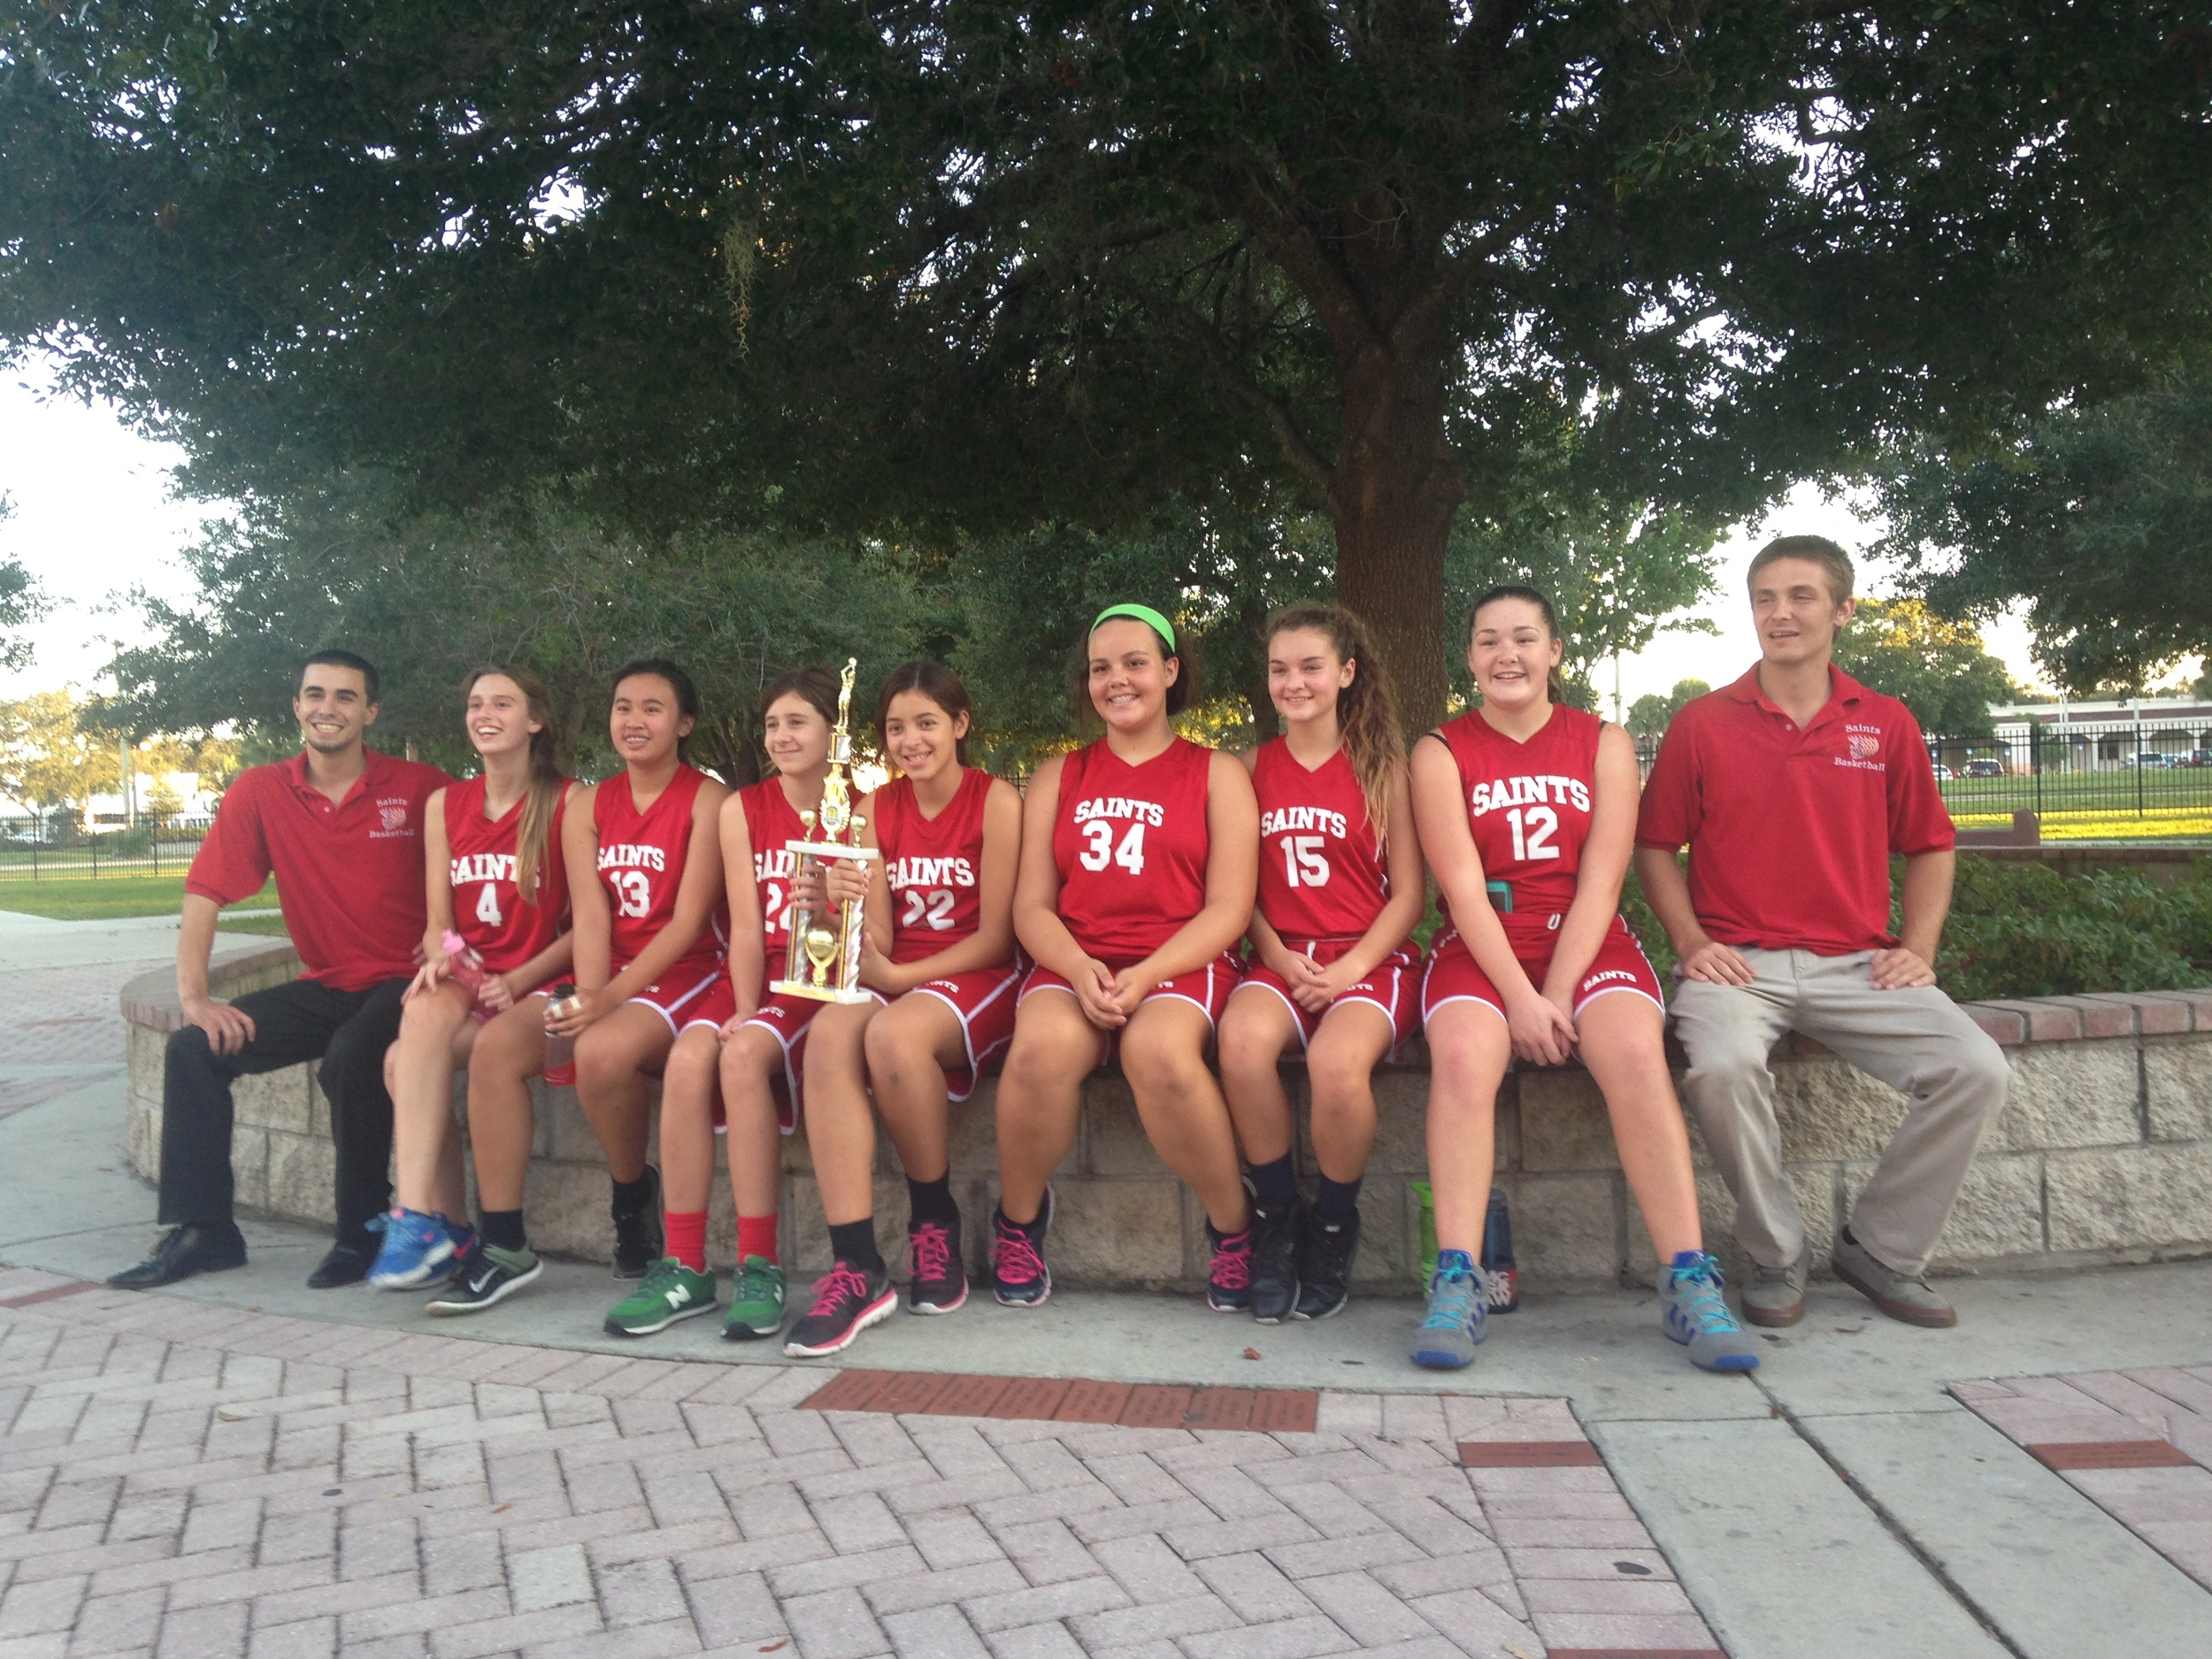 Our 2015 Girls Basketball Team won 3rd place this year!!!!